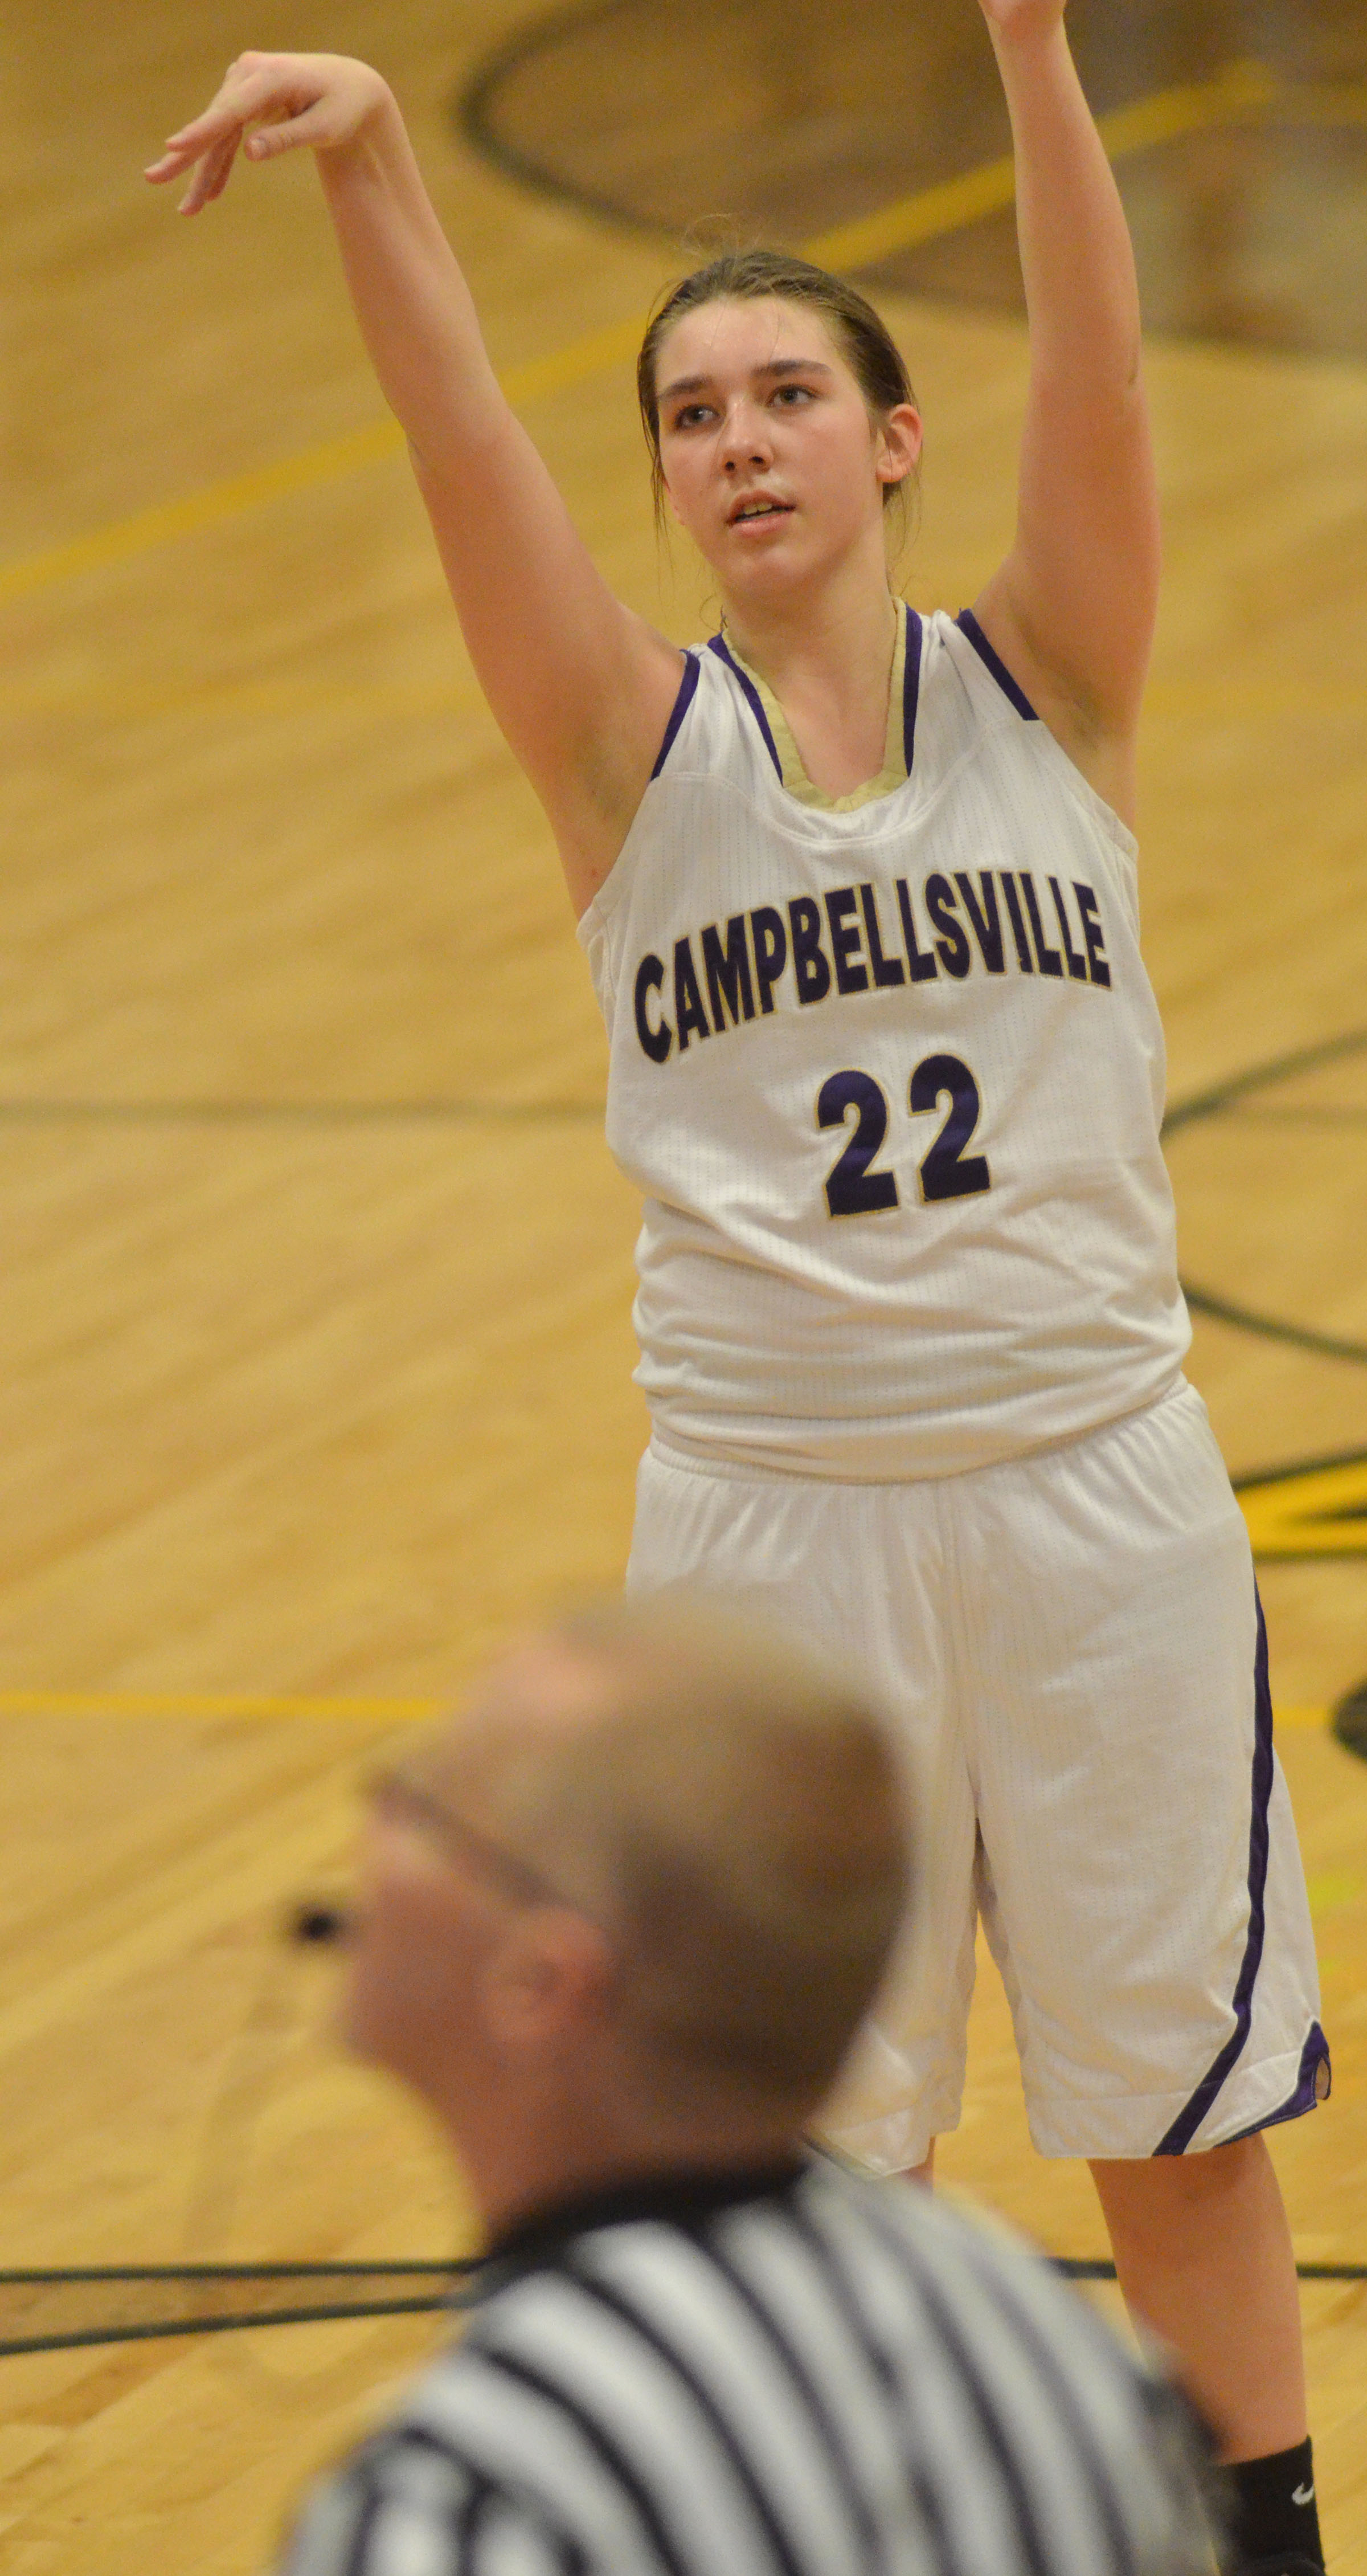 Campbellsville Middle School eighth-grader Abi Wiedewitsch shoots the ball.